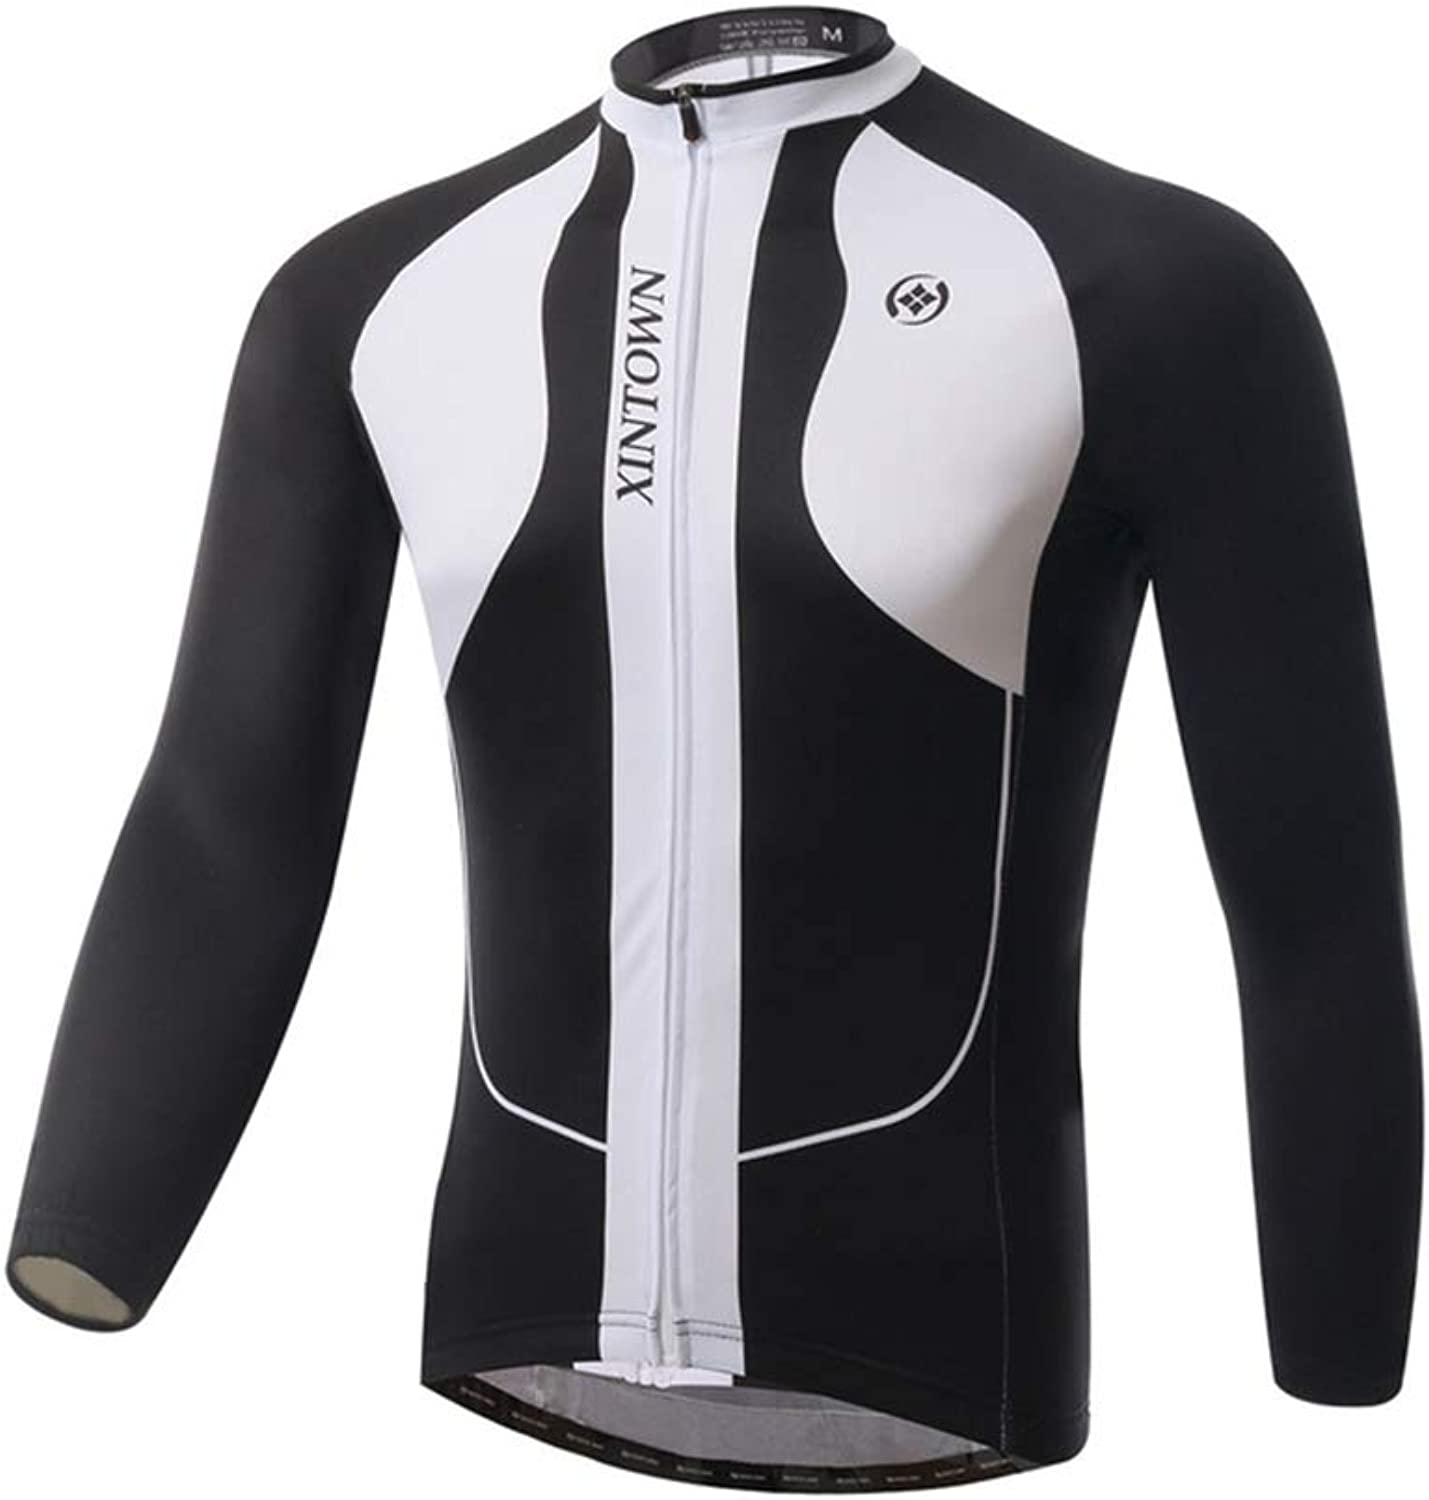 Cycling LongSleeved Shirt, Bicycle Wear Spring and Autumn Moisture Wicking QuickDrying Clothes